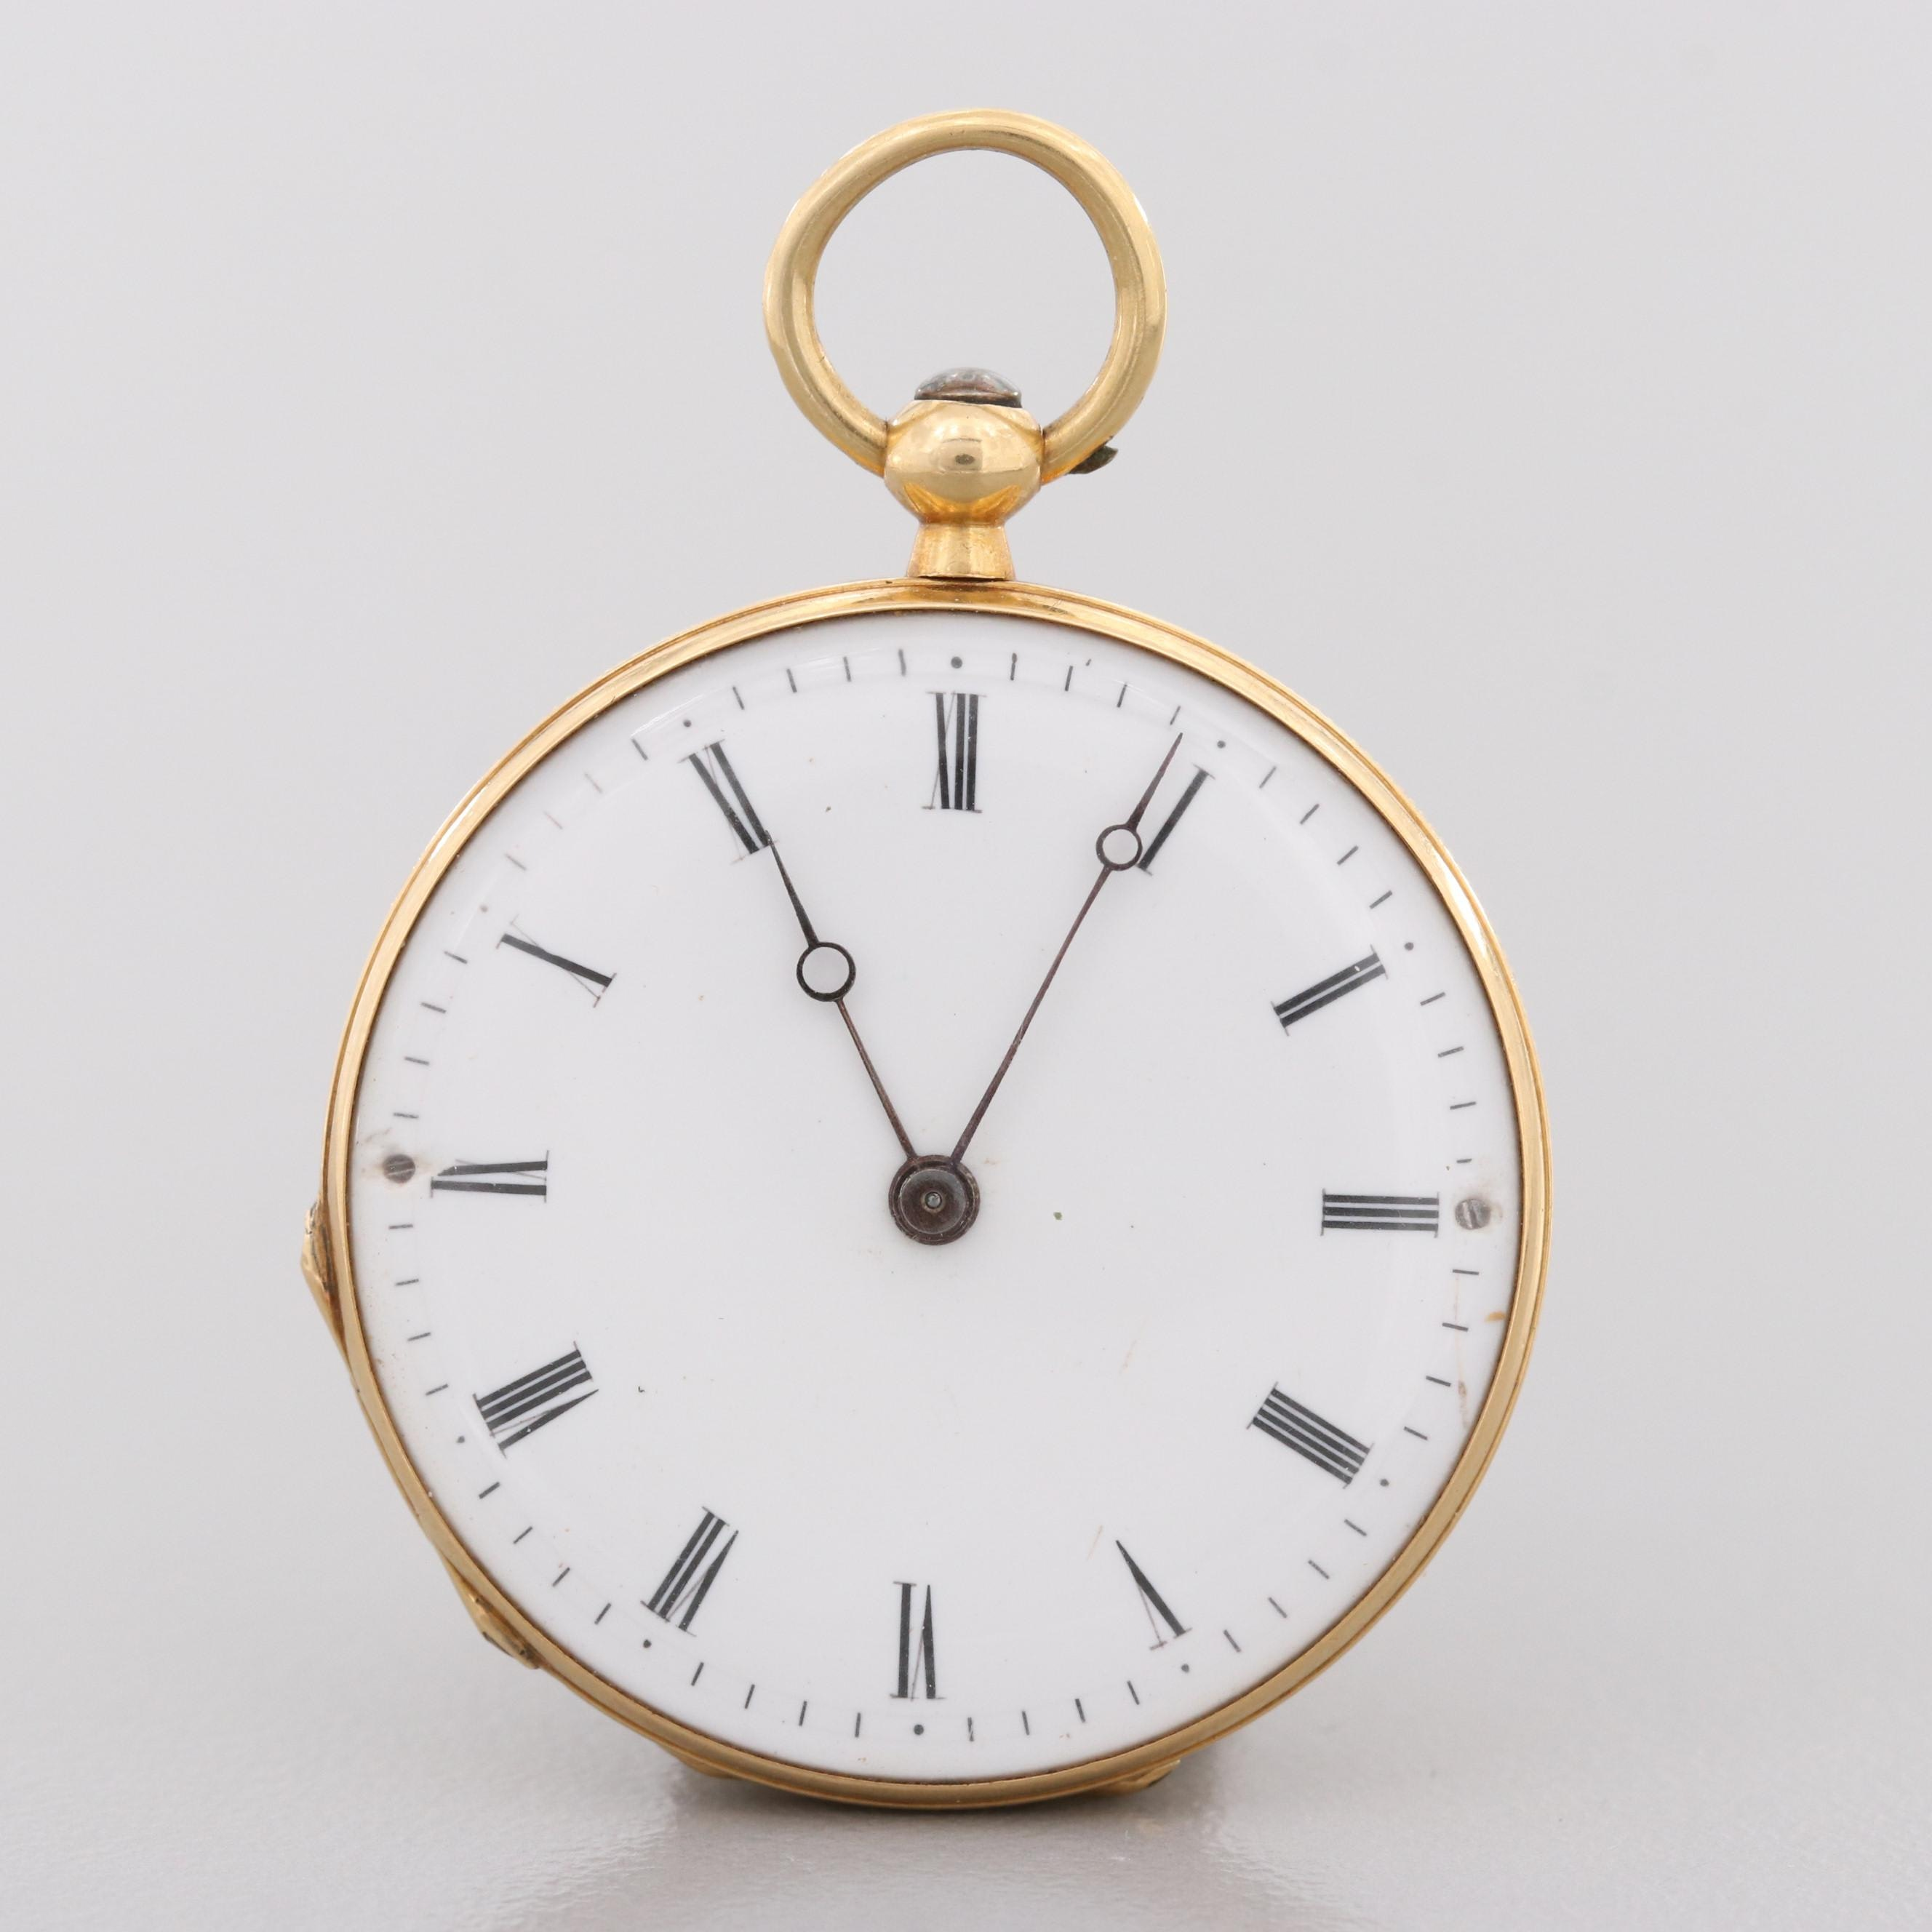 Antique André Brunet Enamel and 18K Yellow Gold Open Face Pocket Watch